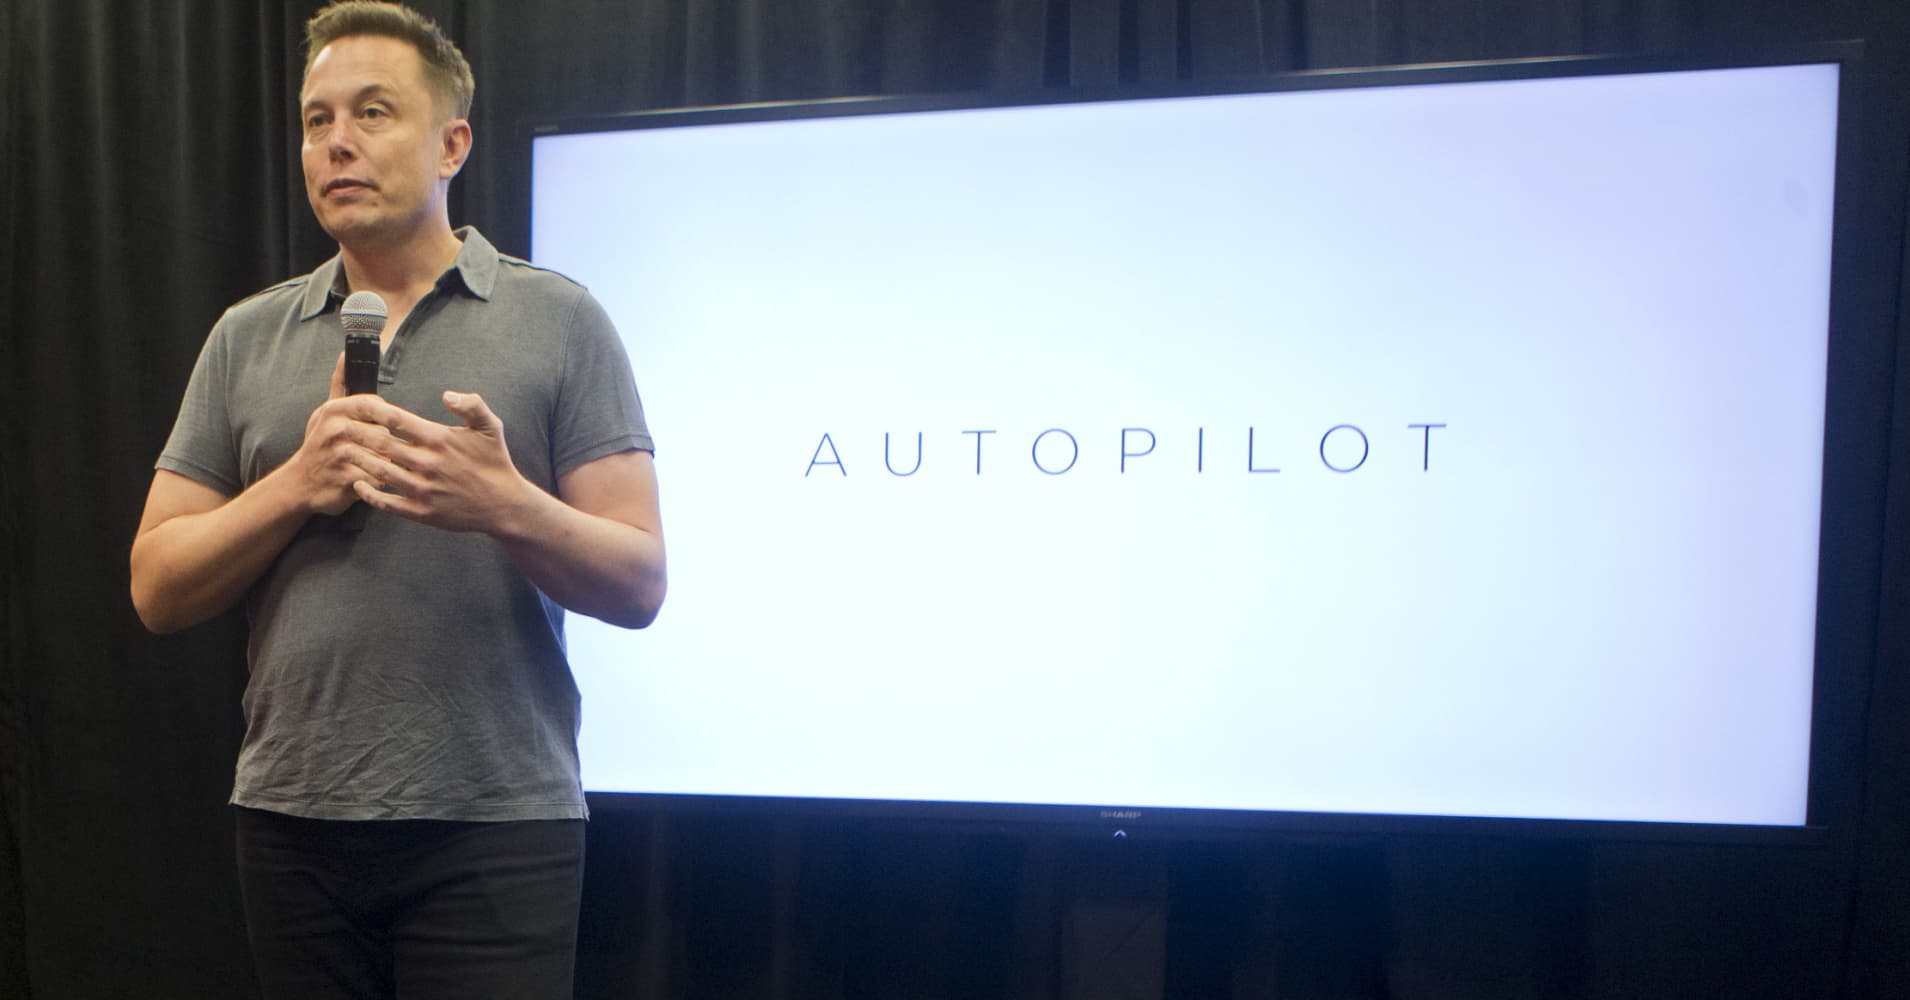 cnbc.com - Jordan Novet - Tesla and AMD are working on an A.I. chip for self-driving cars, source says